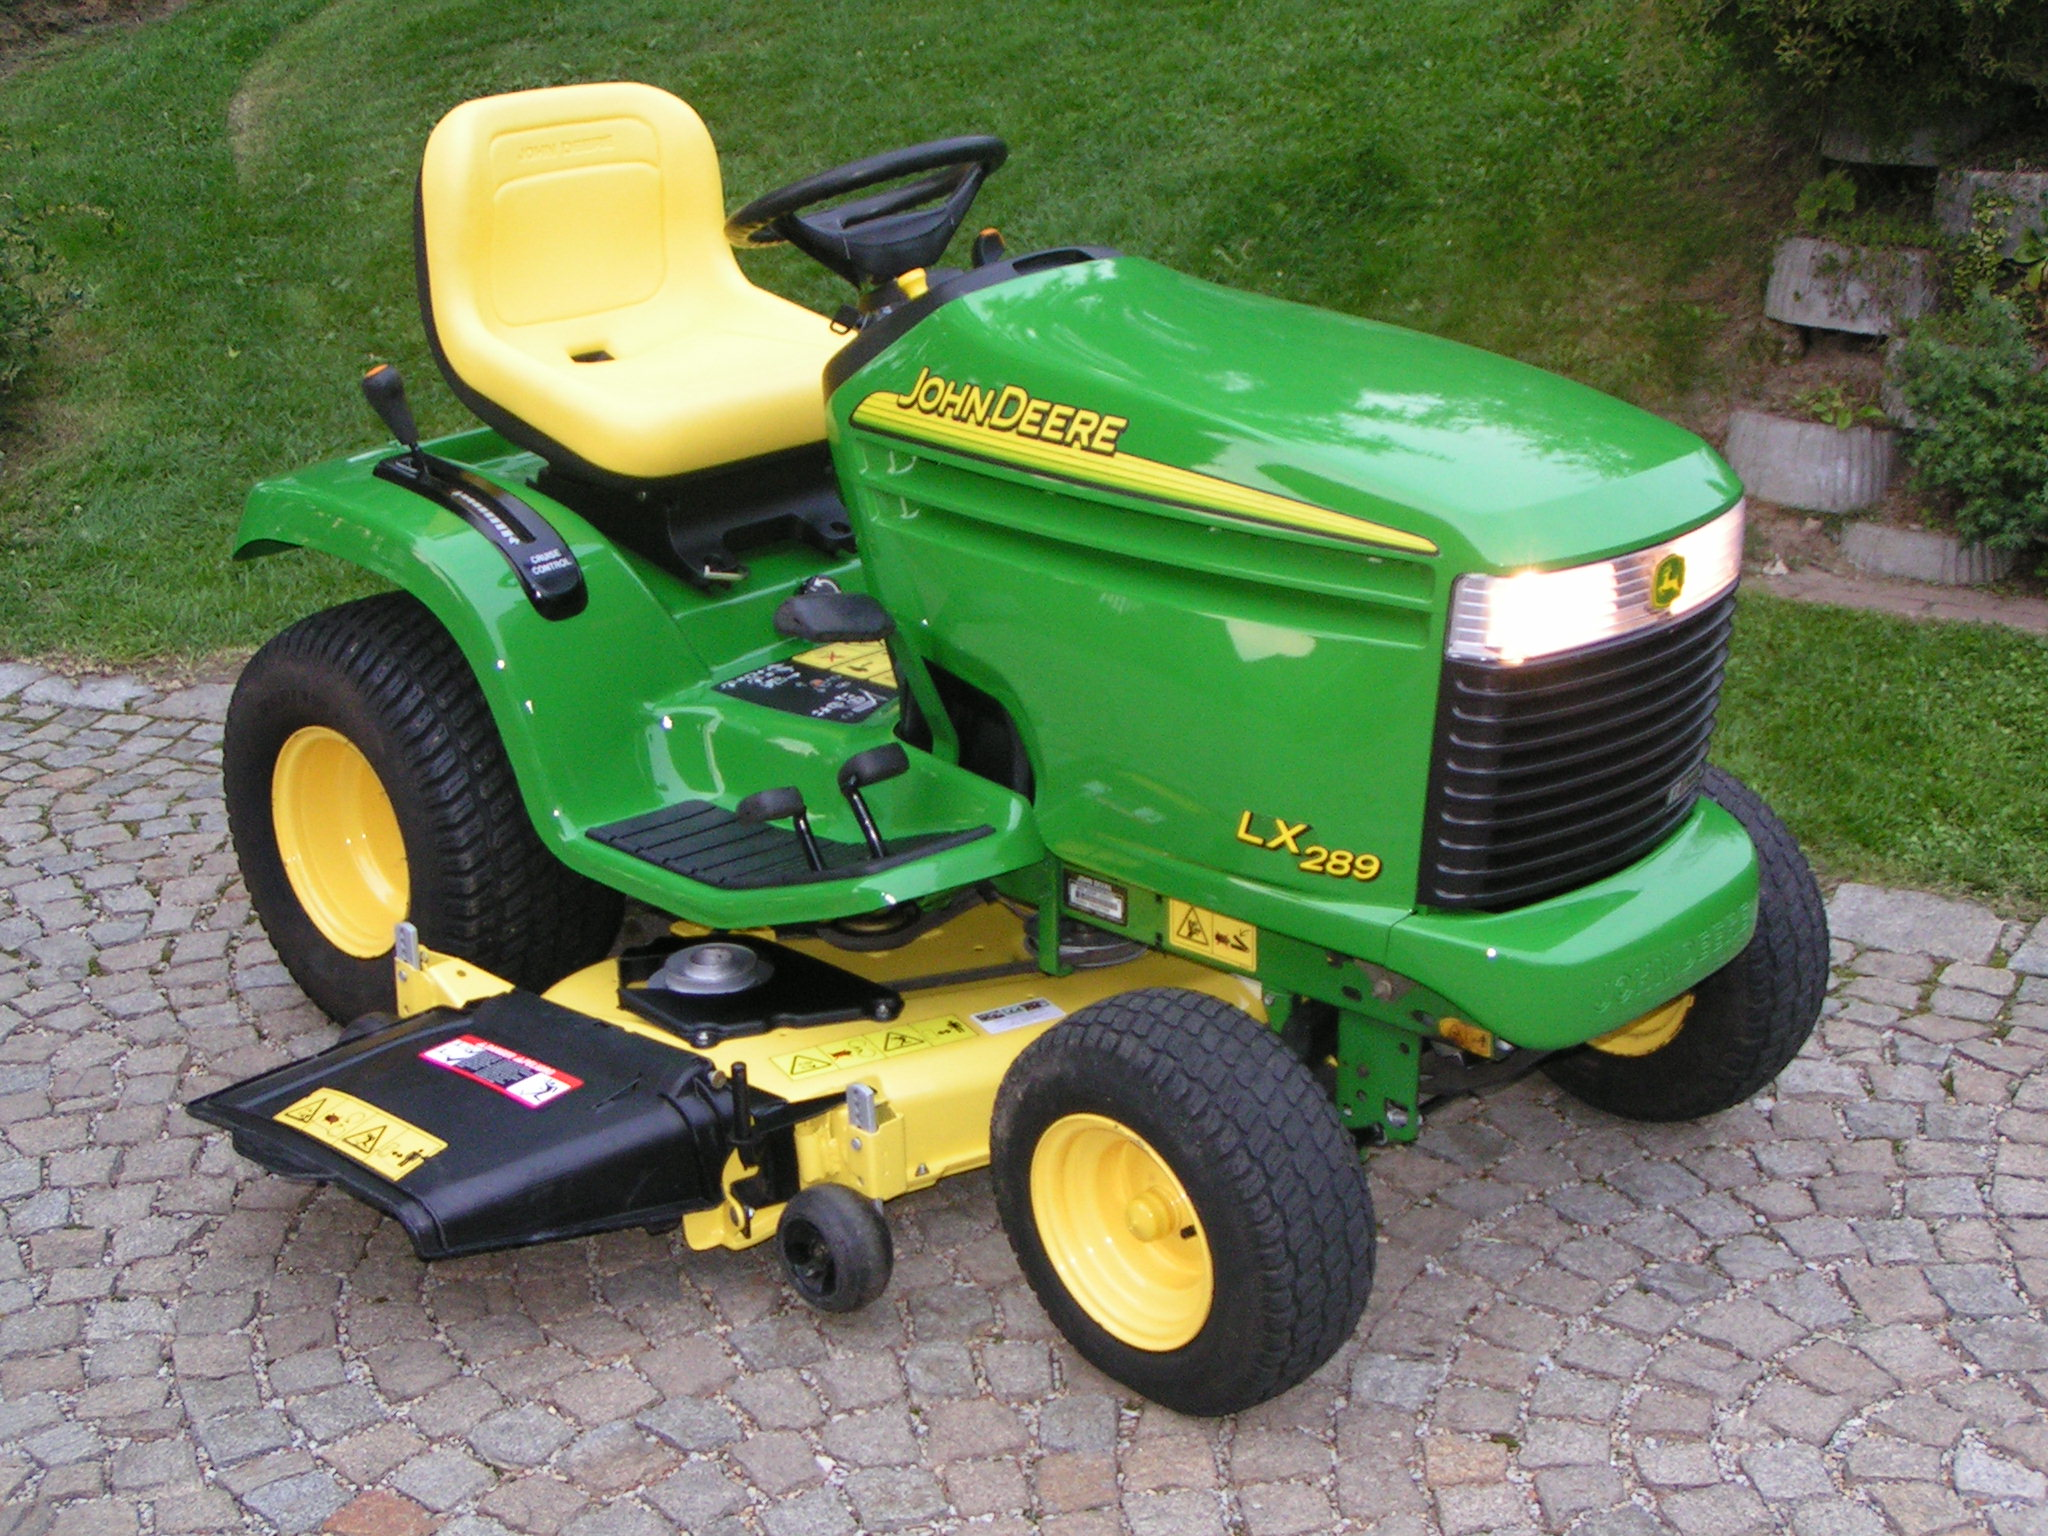 John Deere Lx289 For Sale Best Deer Photos Does Anyone Have A Mowing Belt Diagram Lx Water Alliance